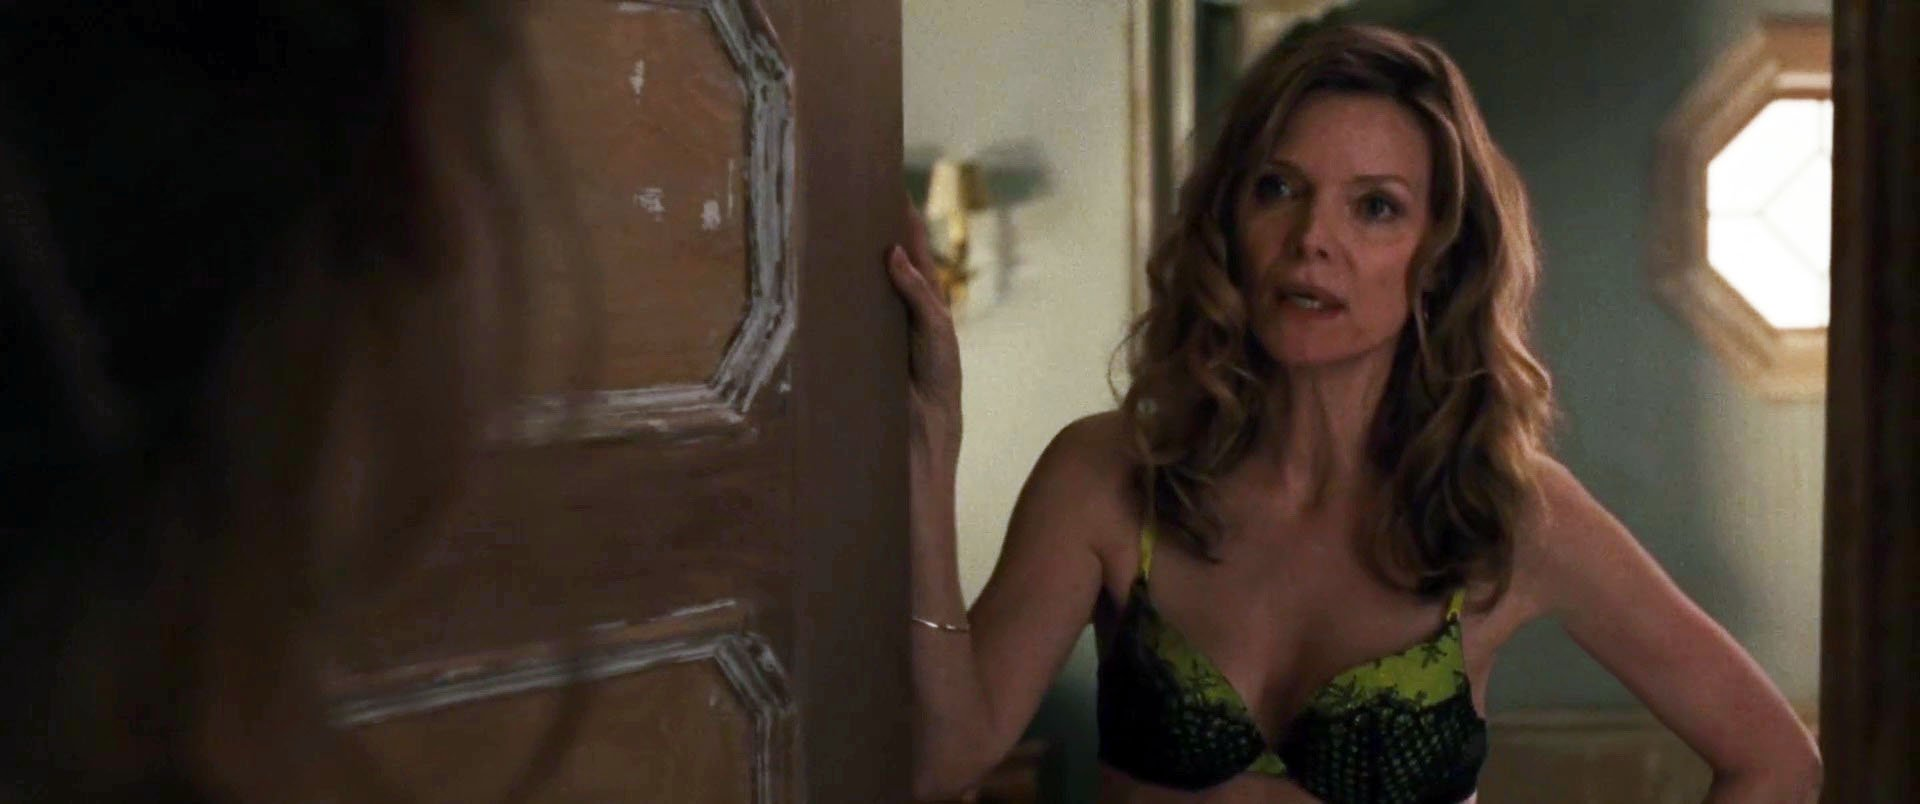 Nude Video Celebs  Michelle Pfeiffer Sexy - Mother 2017-8168